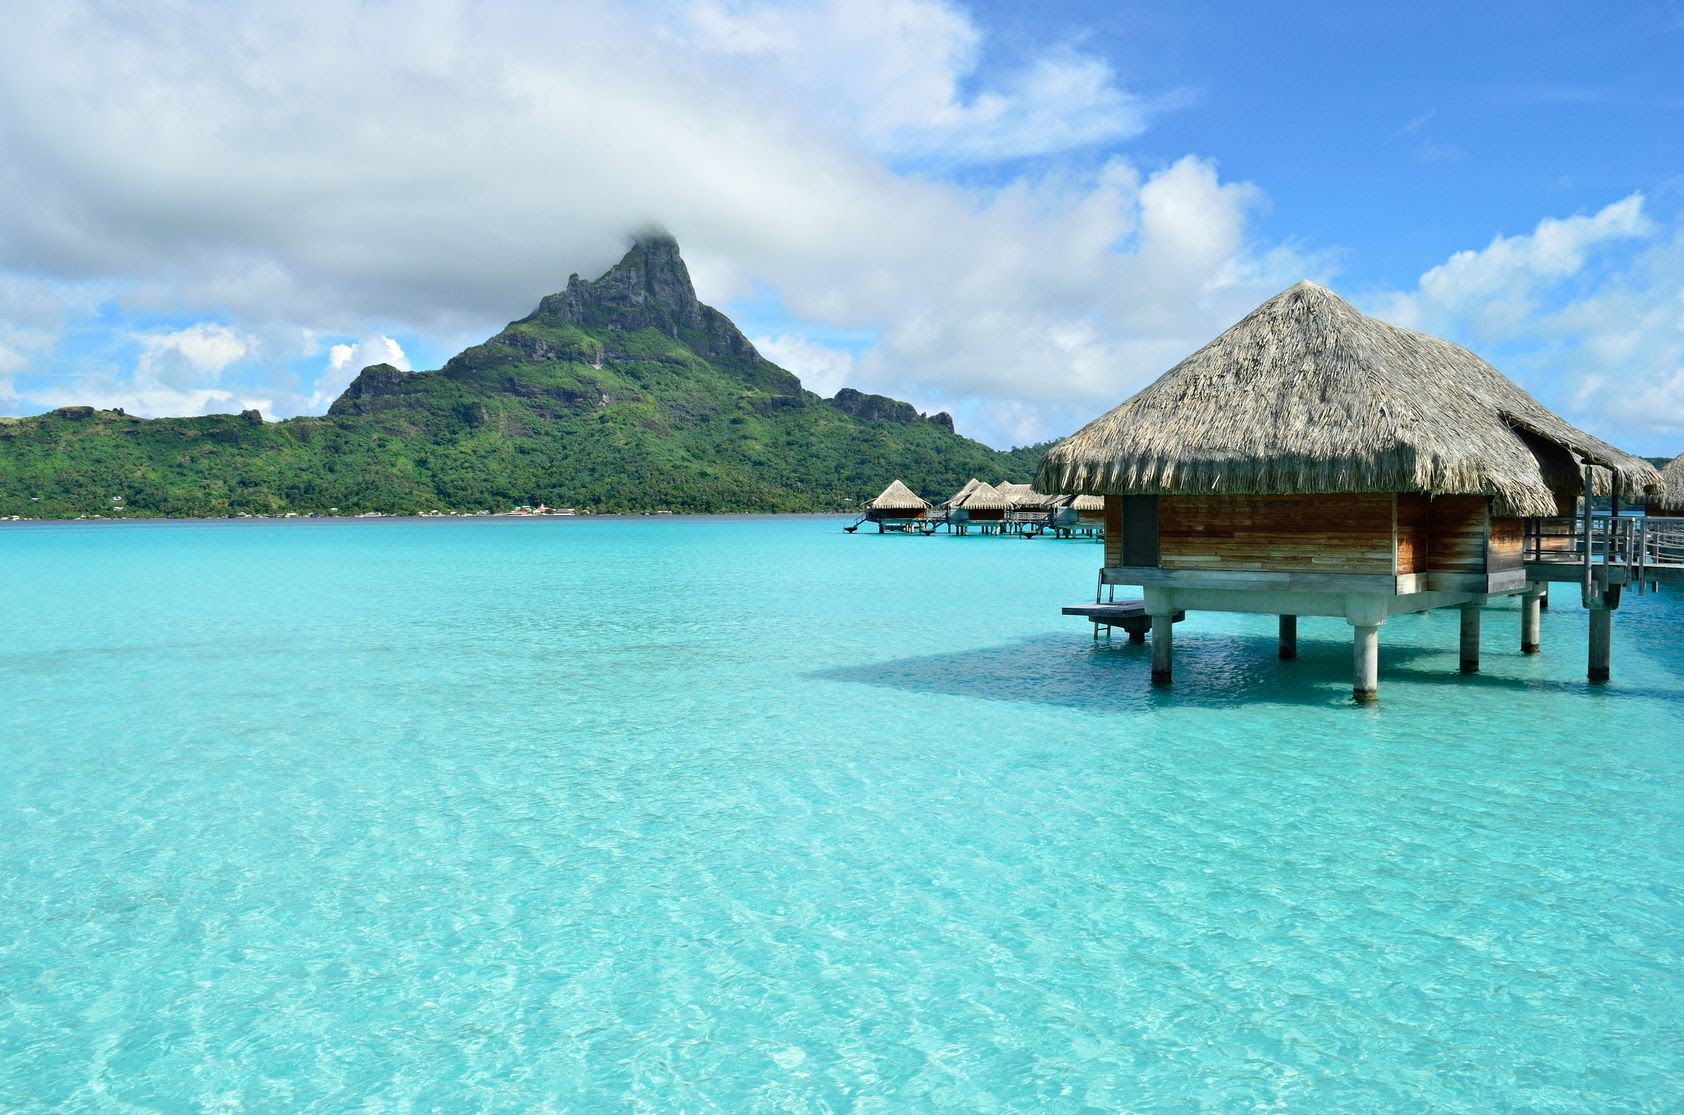 The Worlds Best OverWater Bungalows  Seriously Travel